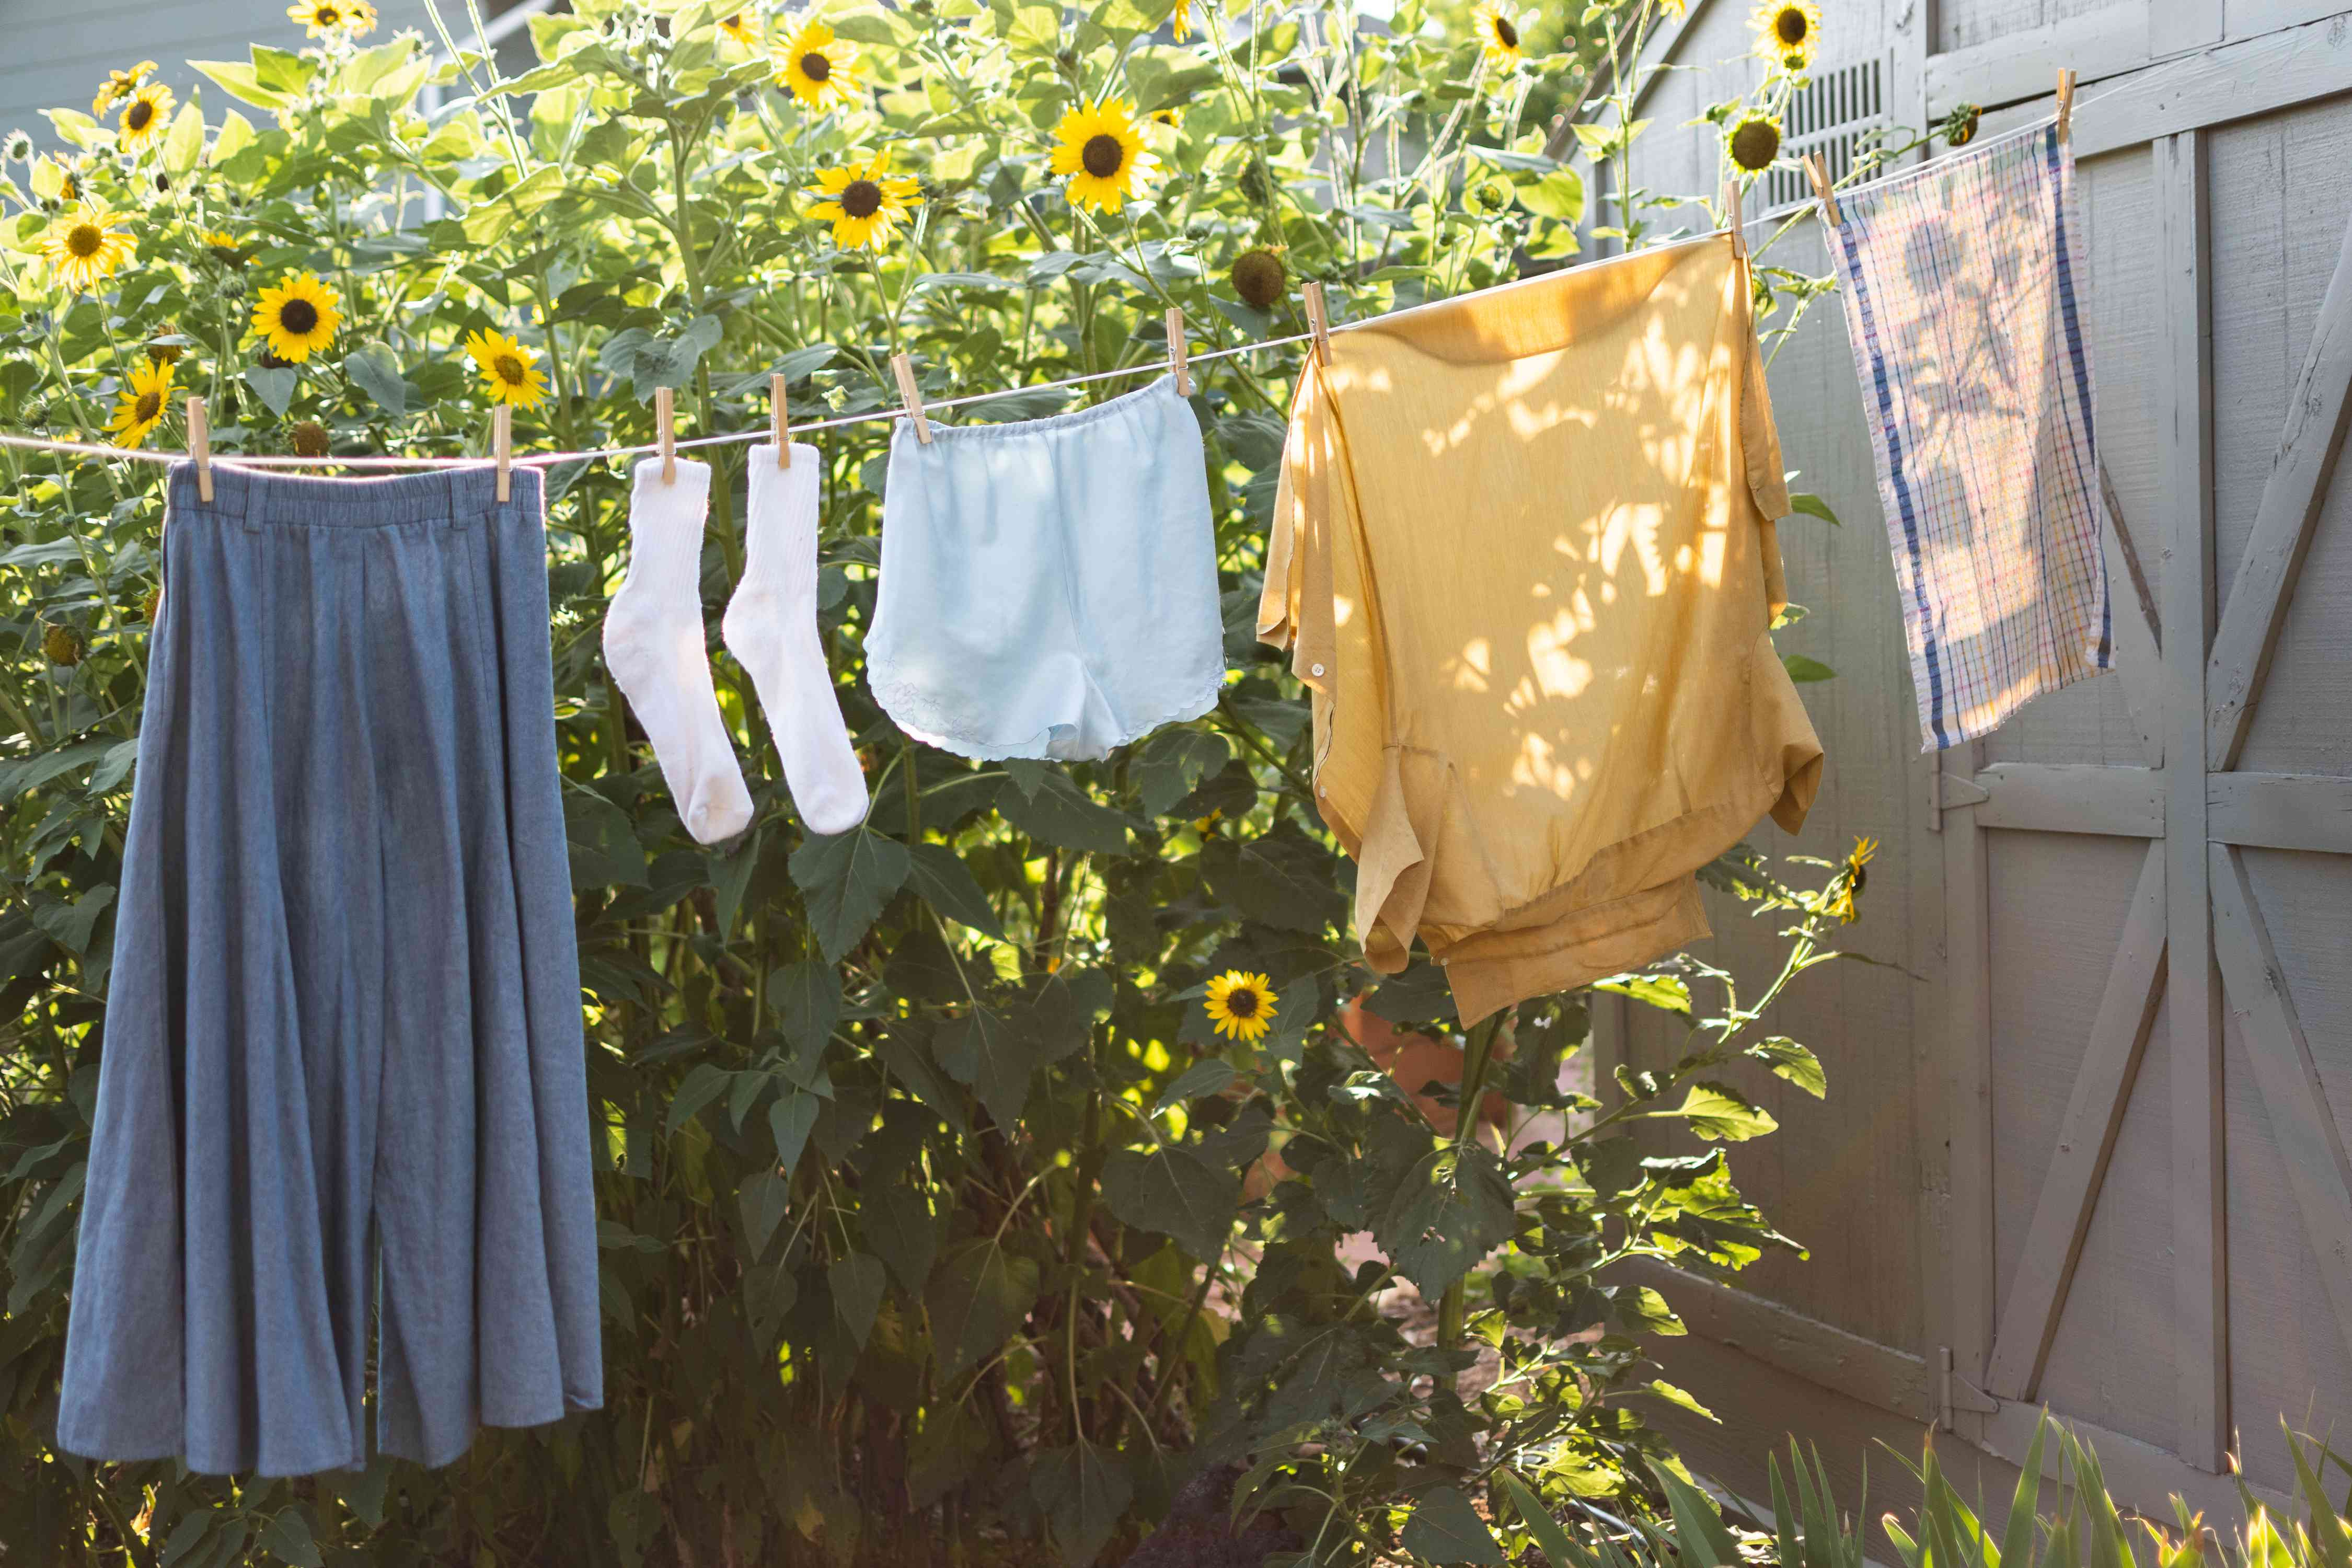 Clothes hanging outside on clothesline next to sunflowers giving off pollen